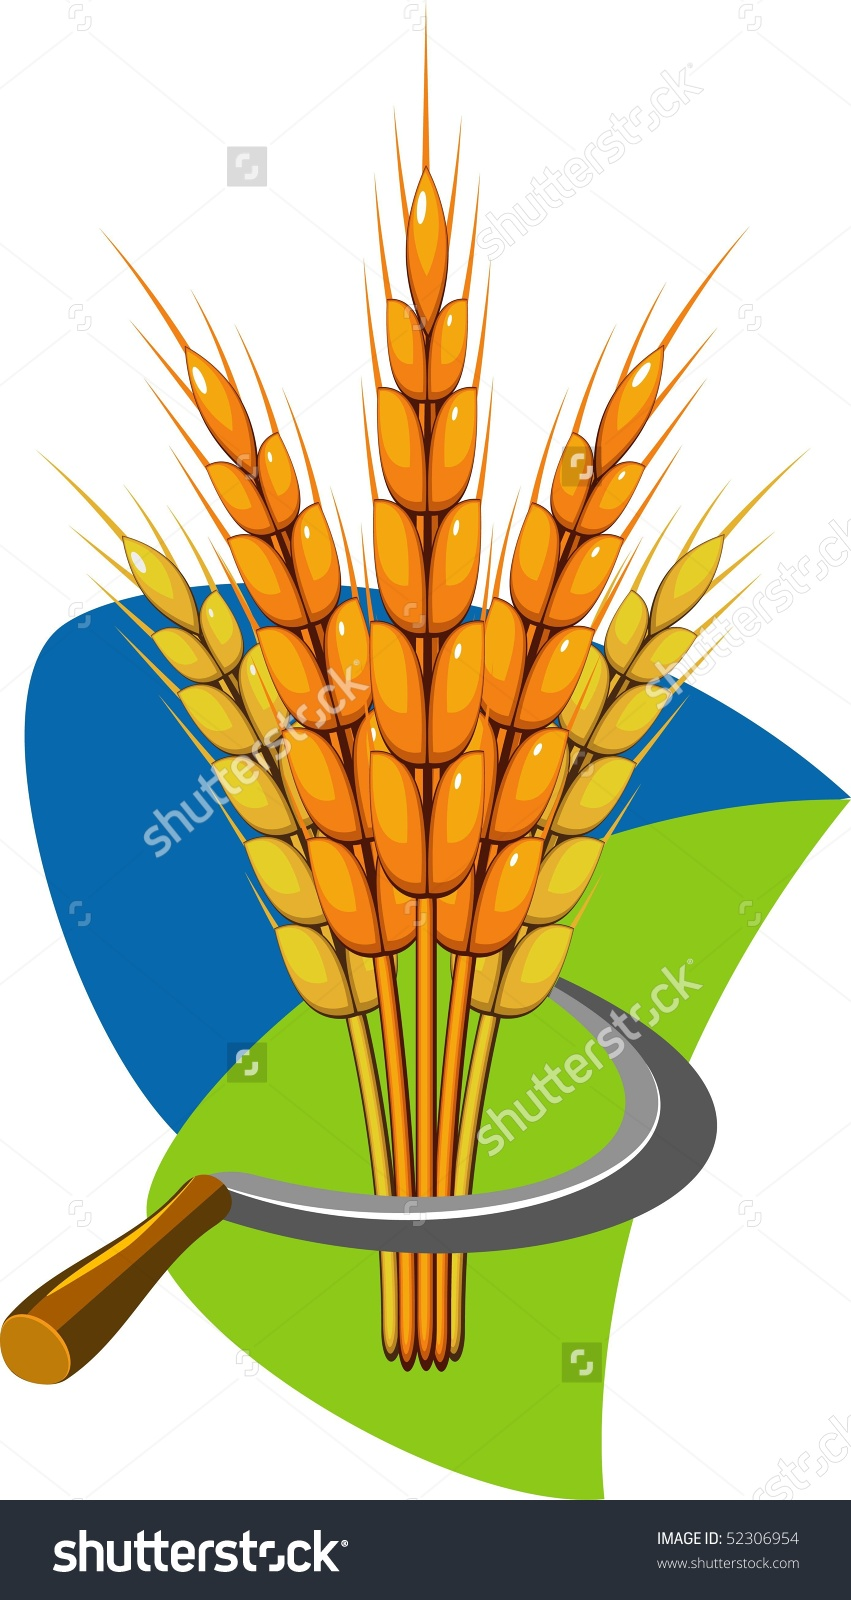 Sheaf Of Wheat And Sickle. Vector Illustration..